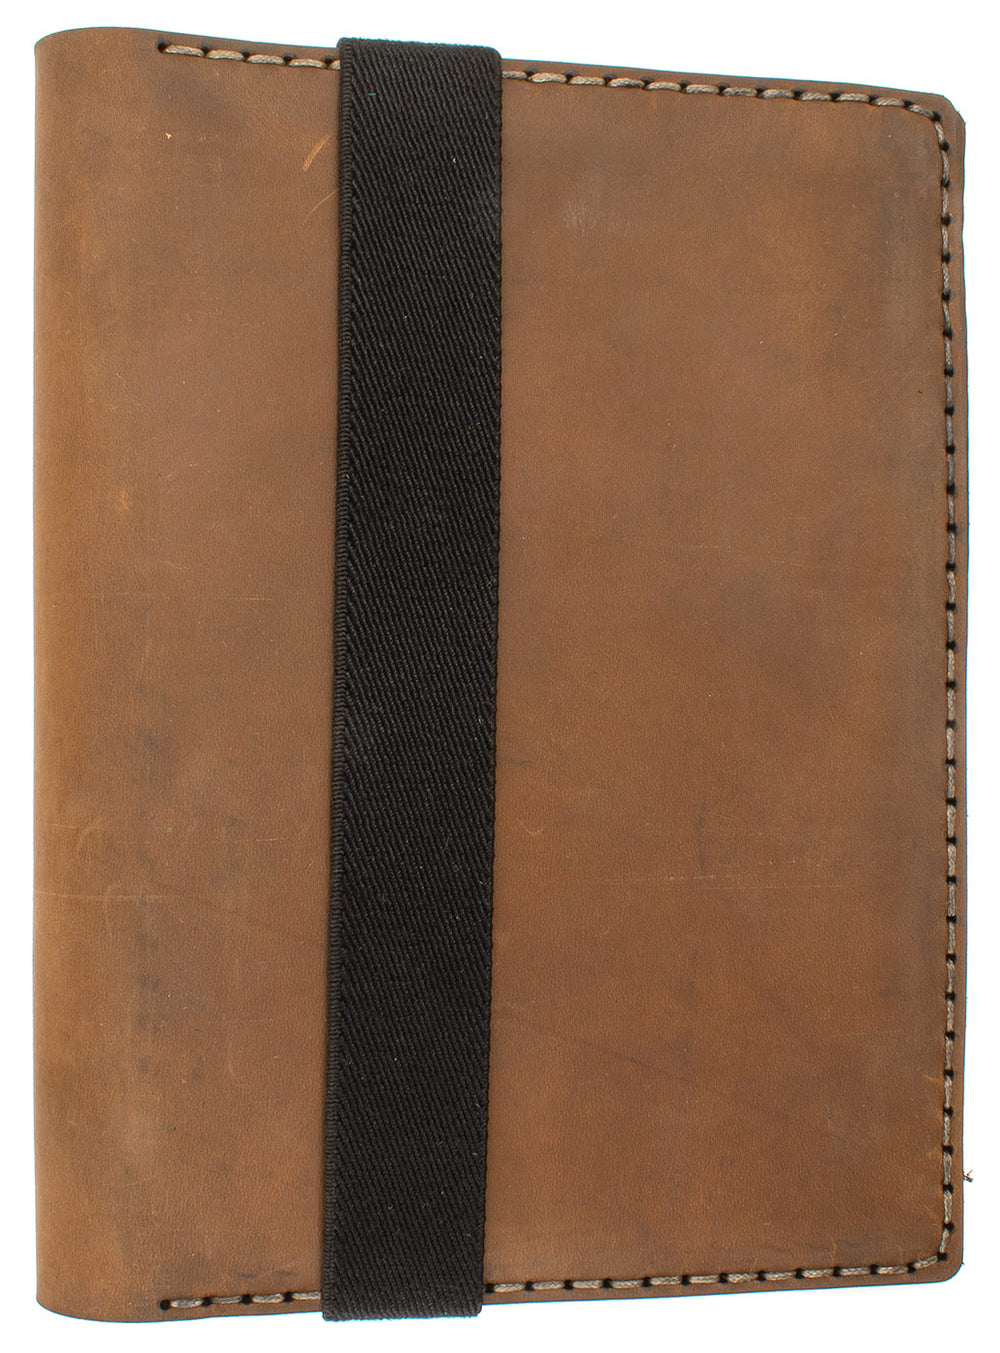 Galen Leather Co. Leather Hobonichi Cousin A5 Planner Cover- Crazy Horse Brown